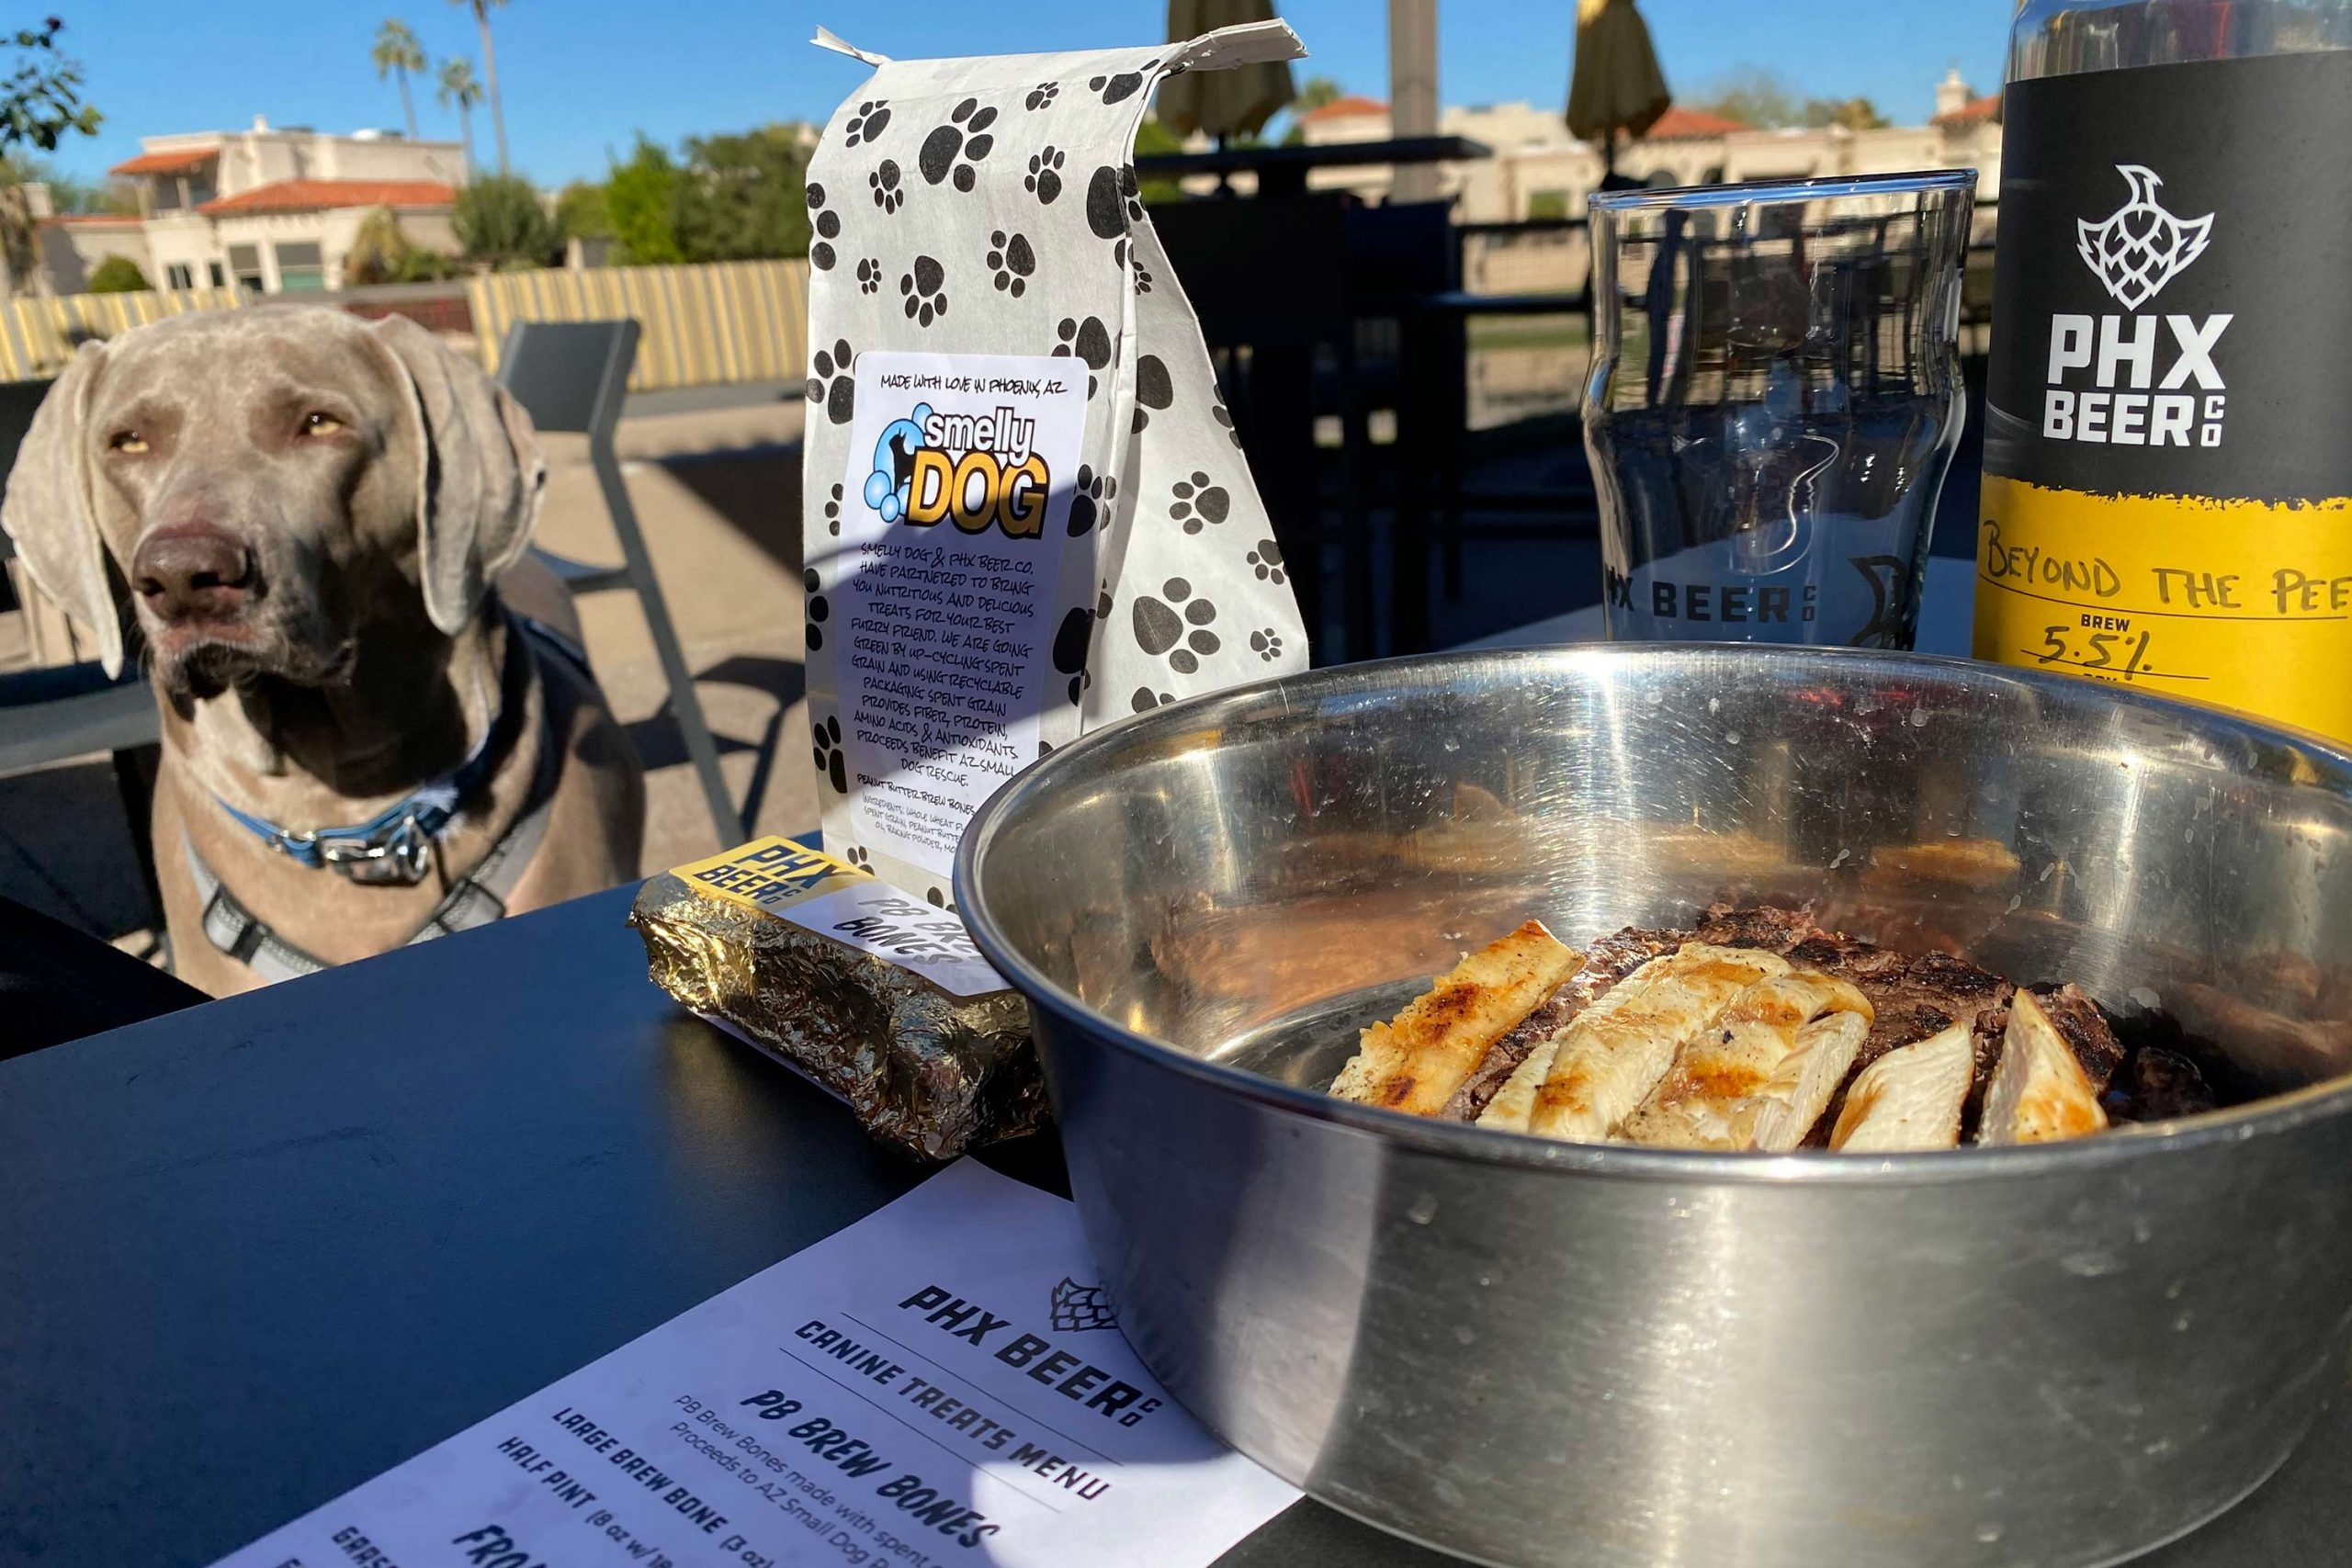 PHX Beer Co. Scottsdale location has the perfect patio for Murphy and his human.